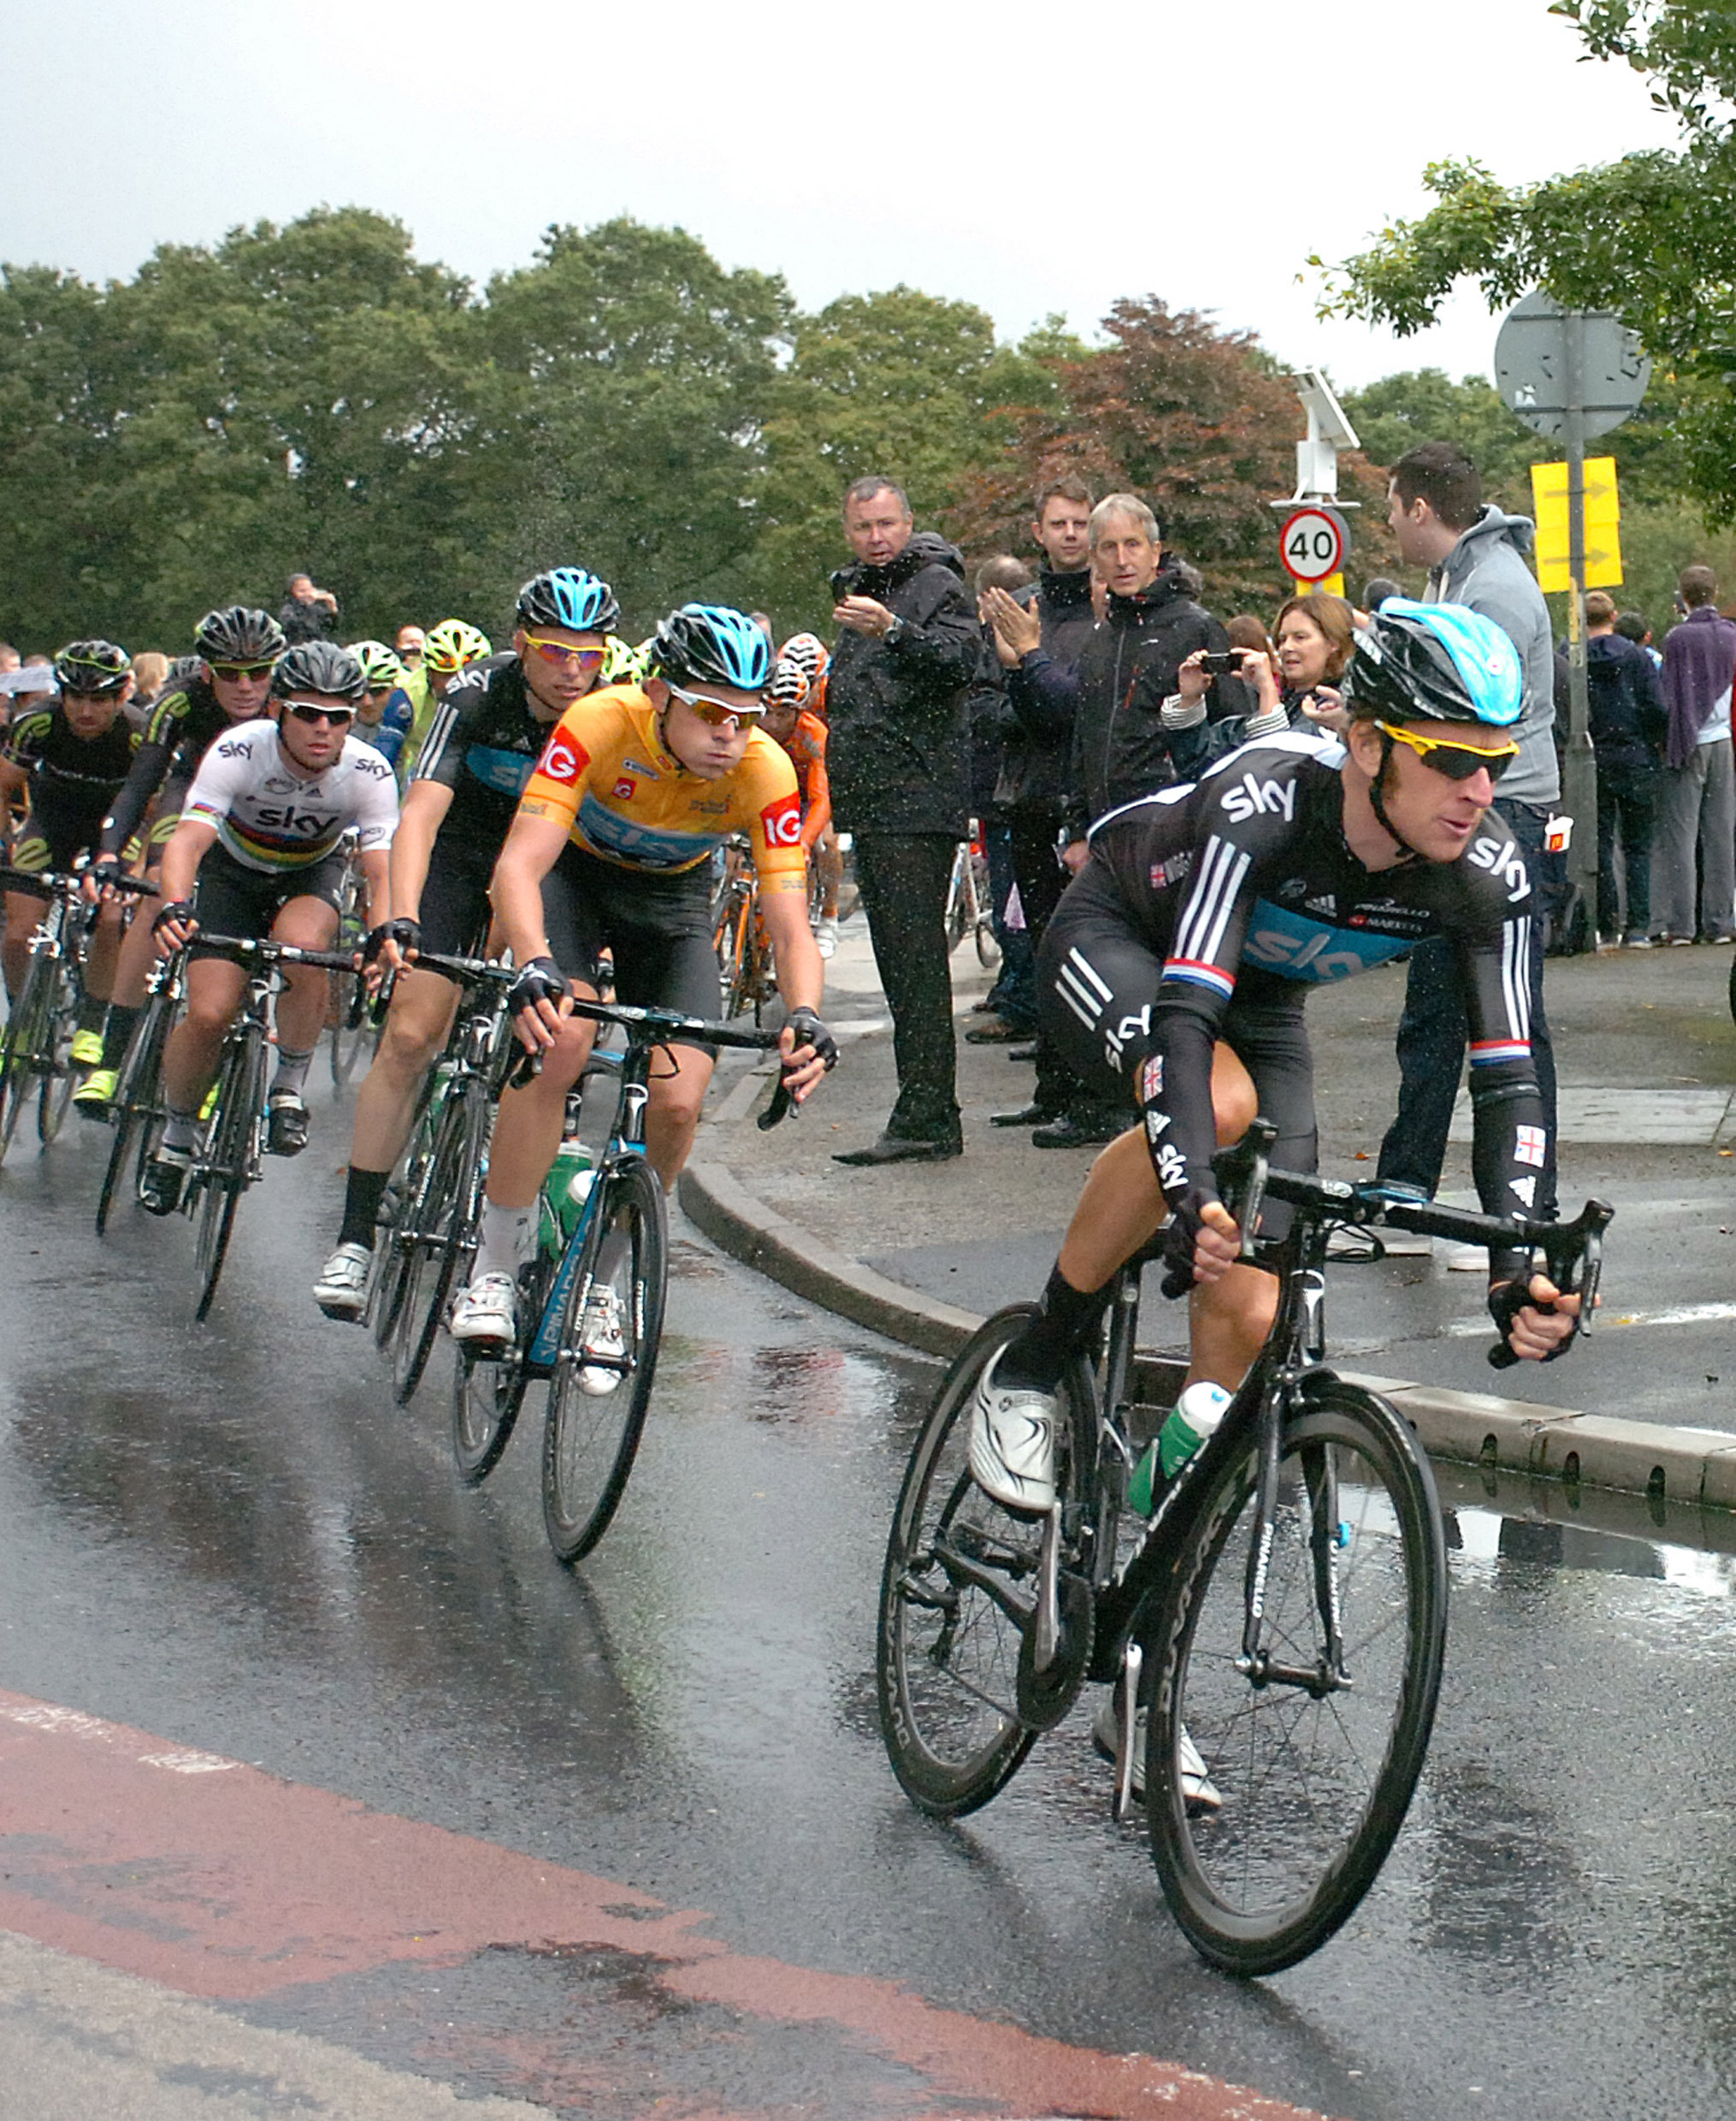 Tour of Britain: Sir Bradley Wiggins confirmed as Team Sky leader